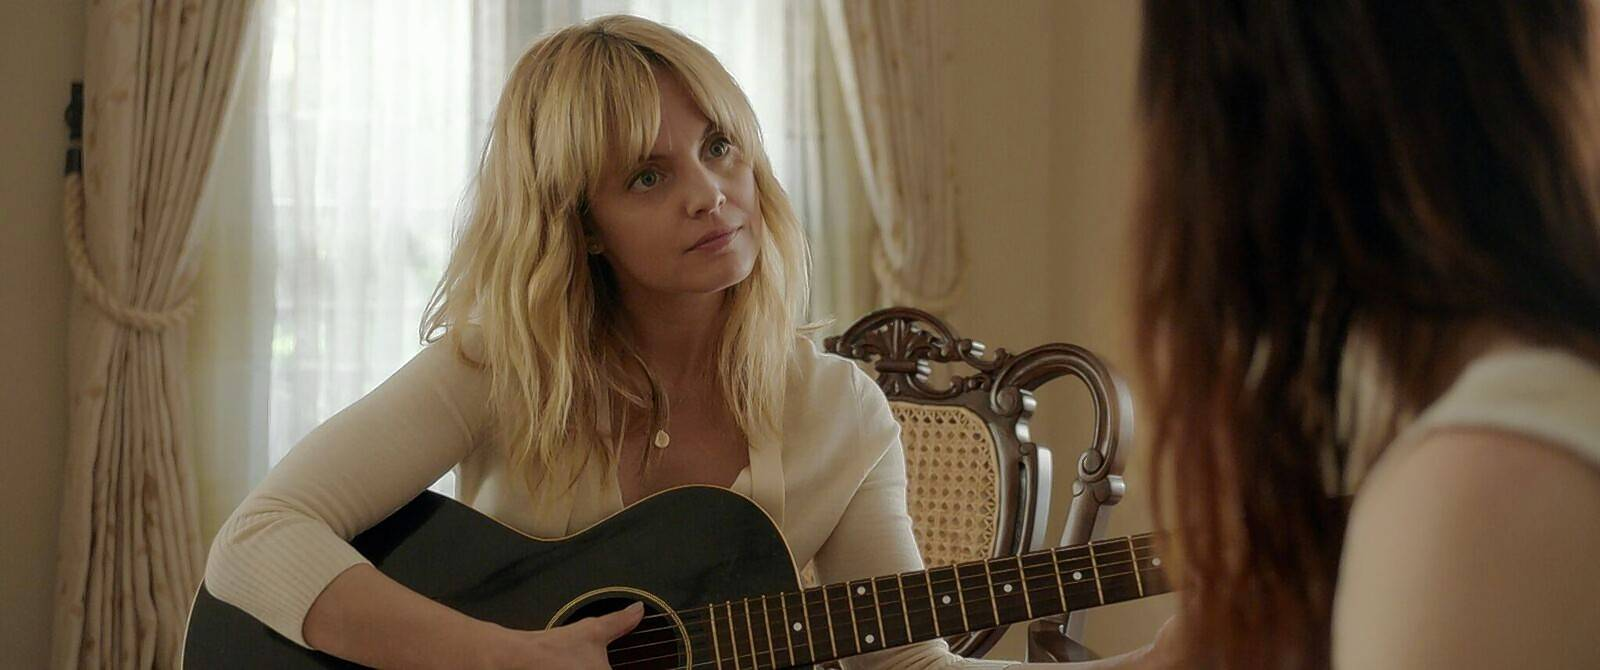 "There is more than guitar lessons at stake when a housewife, played by Mena Suvari, hooks up with a singer/songwriter played by Lena Hall in ""Becks,"" a movie based on the life of Arlington Heights native Alyssa Robbins."